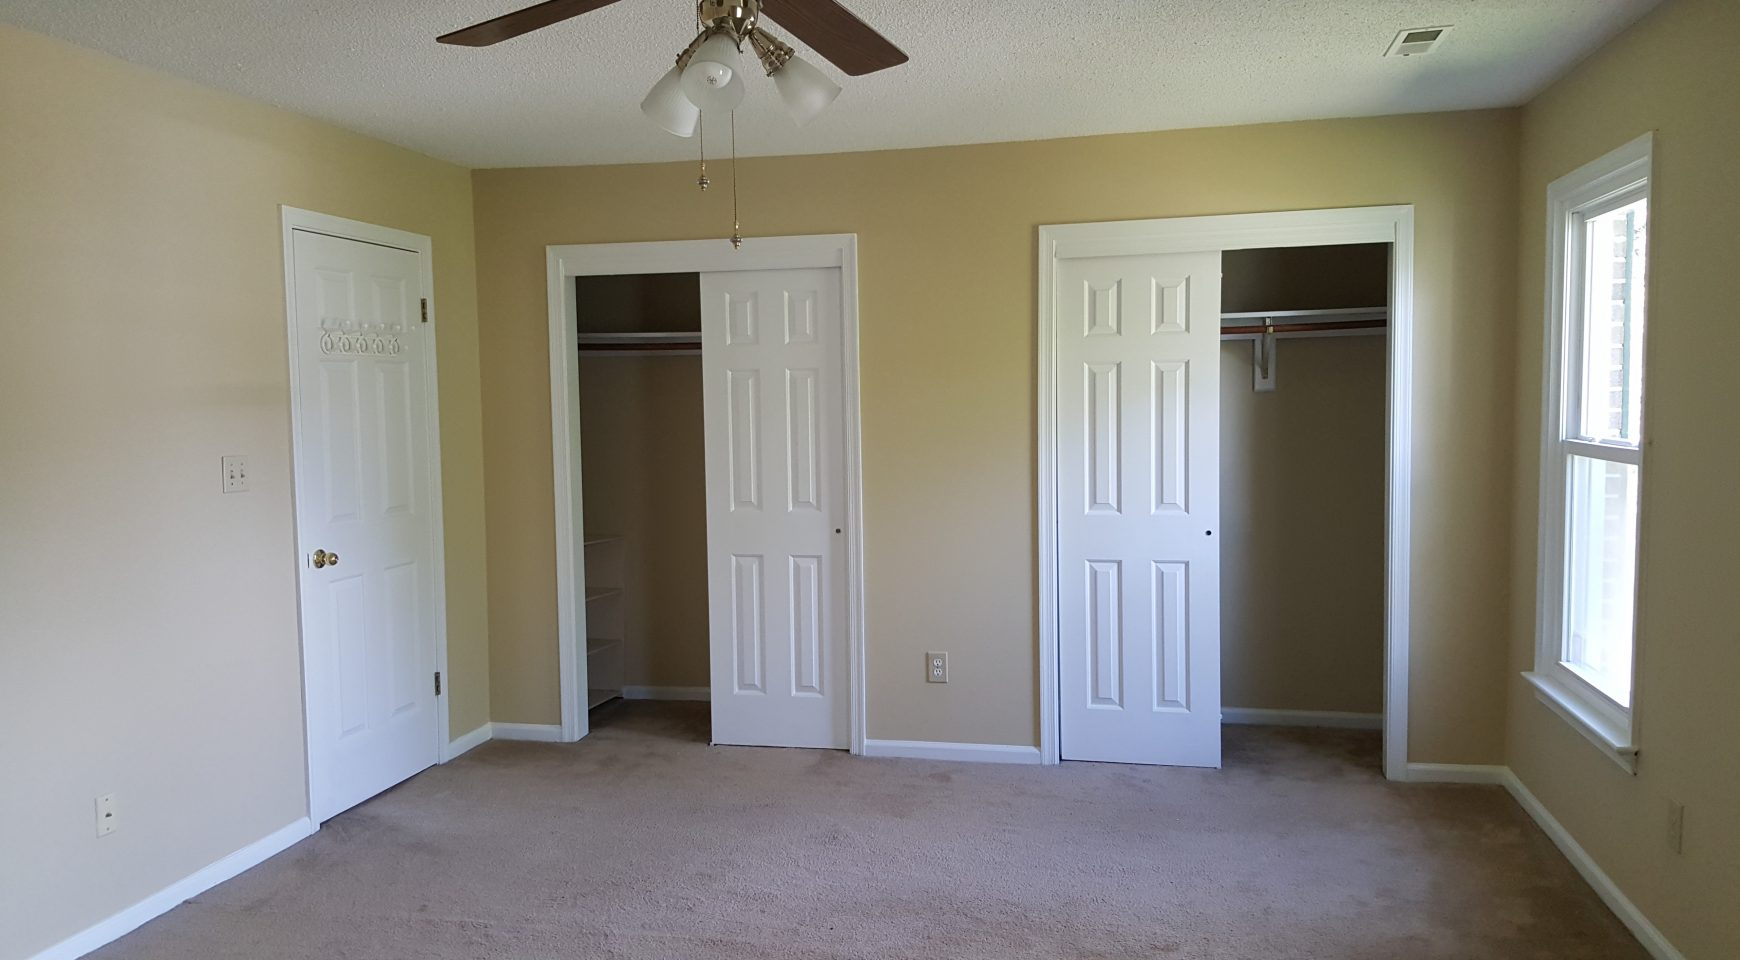 Master Bedroom View Of His And Her Closet